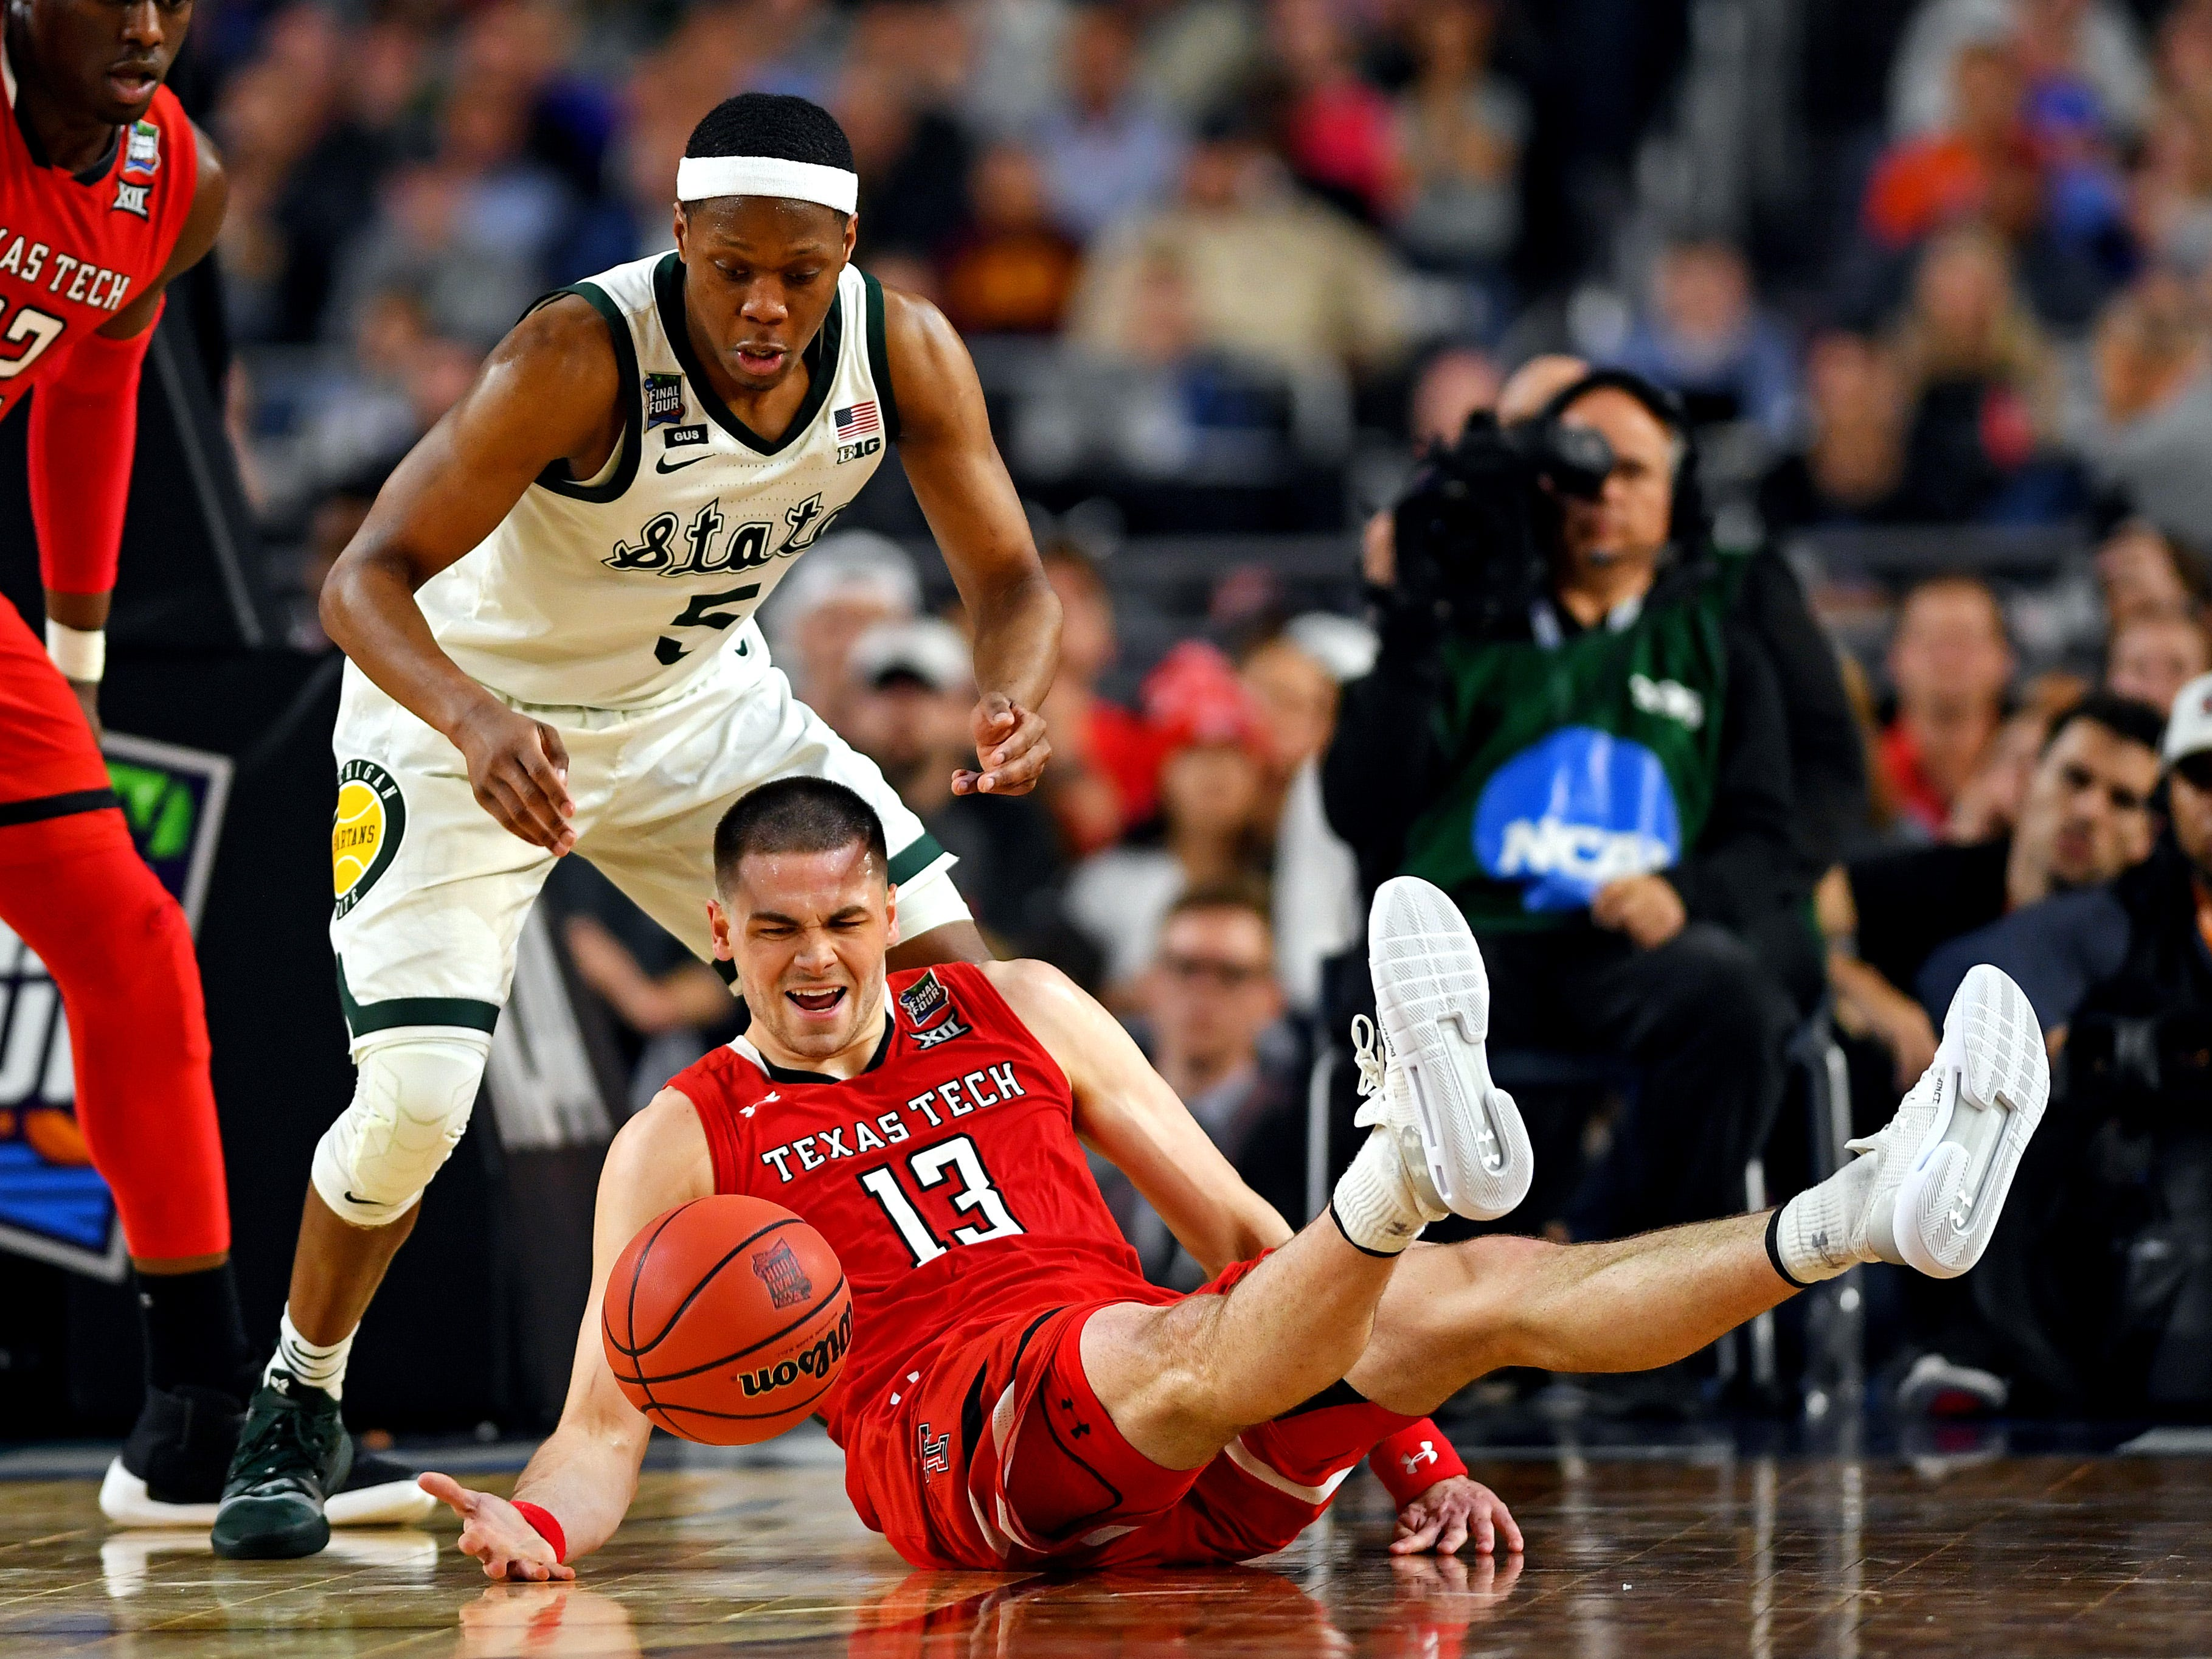 Final Four: Texas Tech Red Raiders guard Matt Mooney (13) falls to the court while Michigan State Spartans guard Cassius Winston (5) goes for the ball.